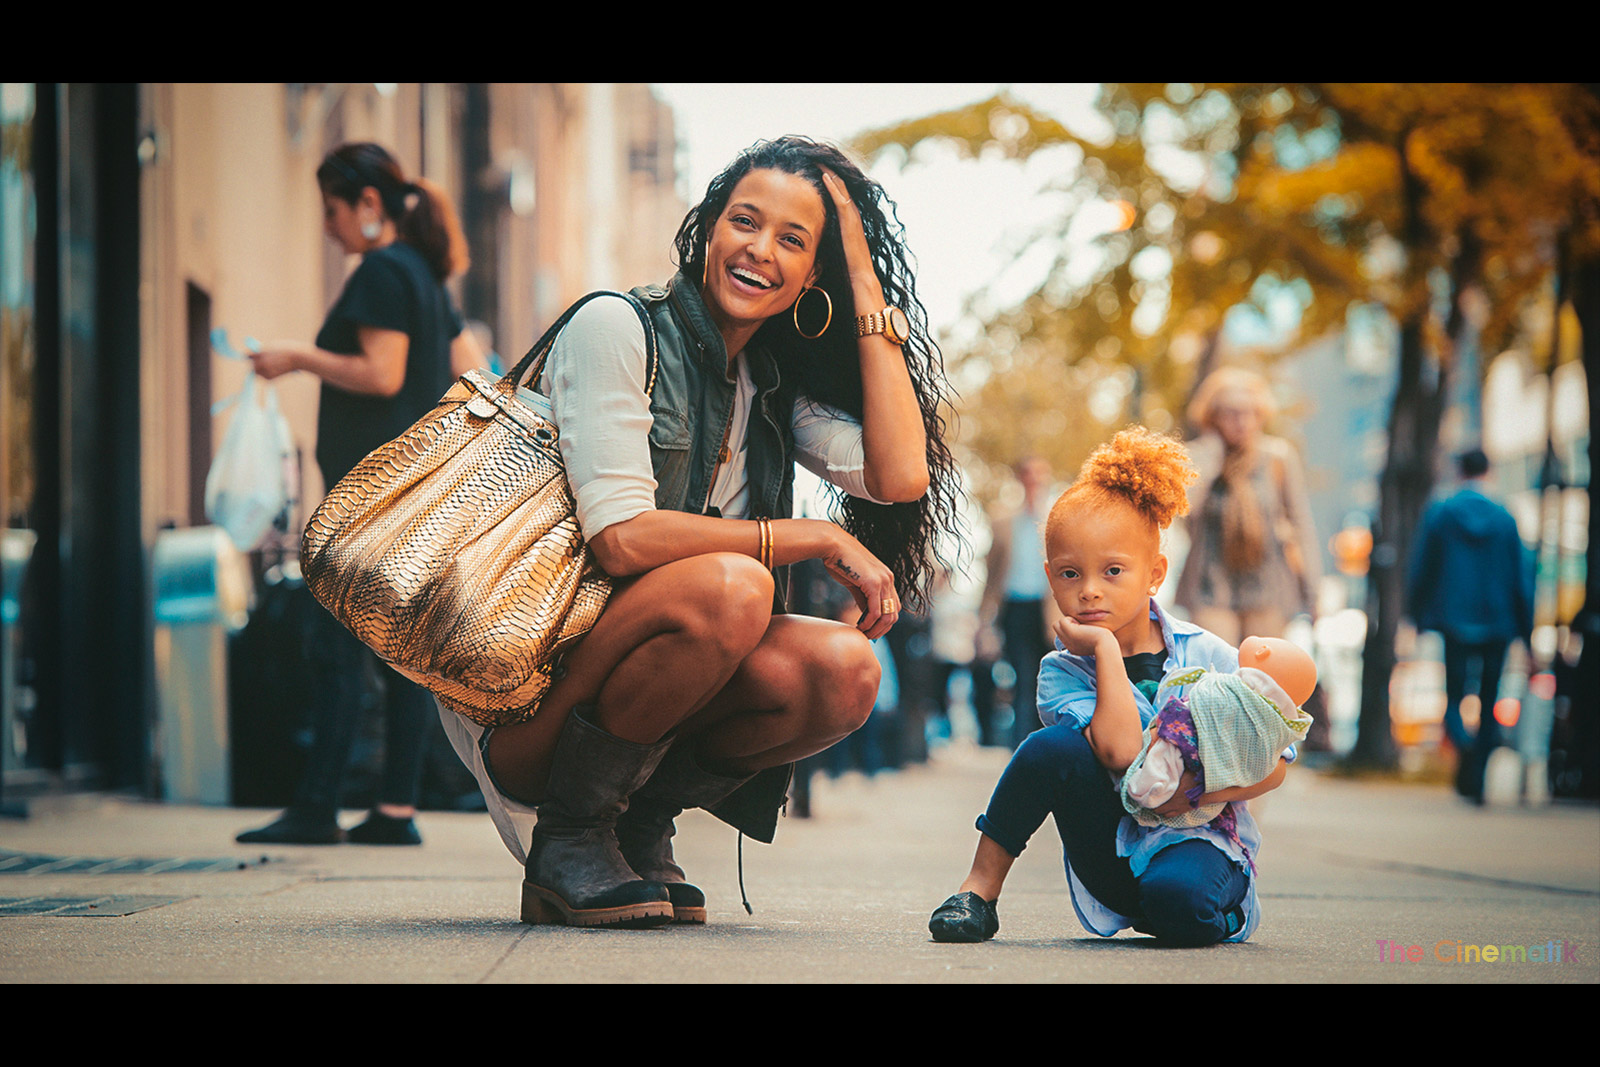 Model Eishia Brigtwell lauging ate her daughter Legend Pearl as she poses in New York cinematic photograph by Kamal Lahmadi/THE CINEMATIK